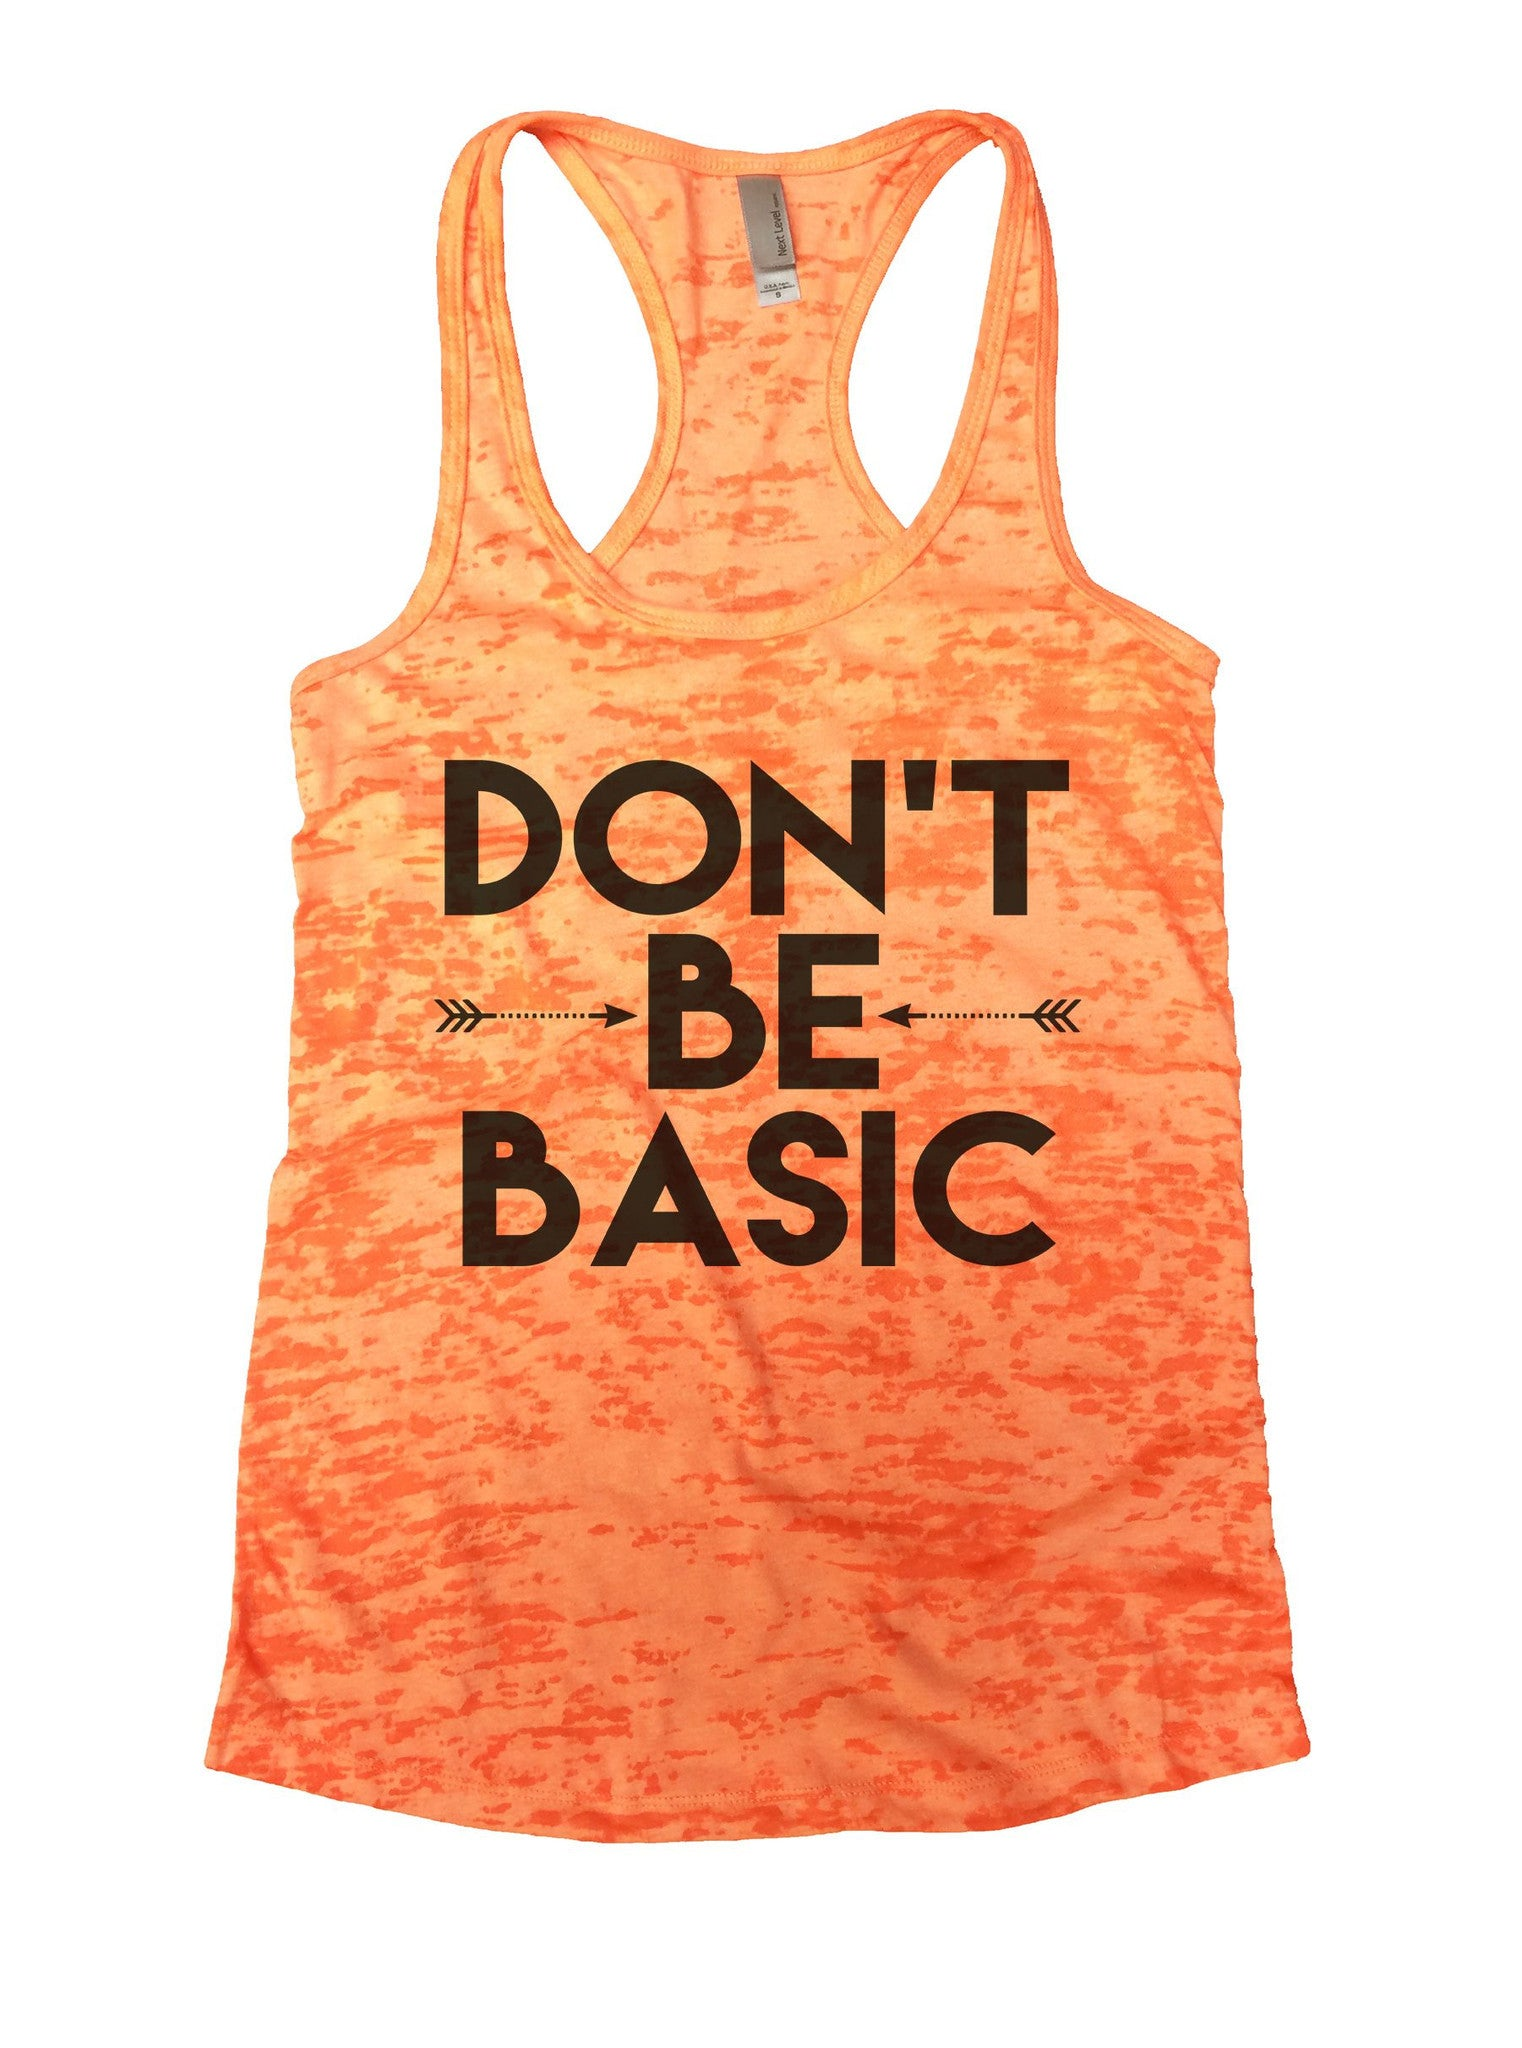 Don't Be Basic Burnout Tank Top By BurnoutTankTops.com - 920 - Funny Shirts Tank Tops Burnouts and Triblends  - 1